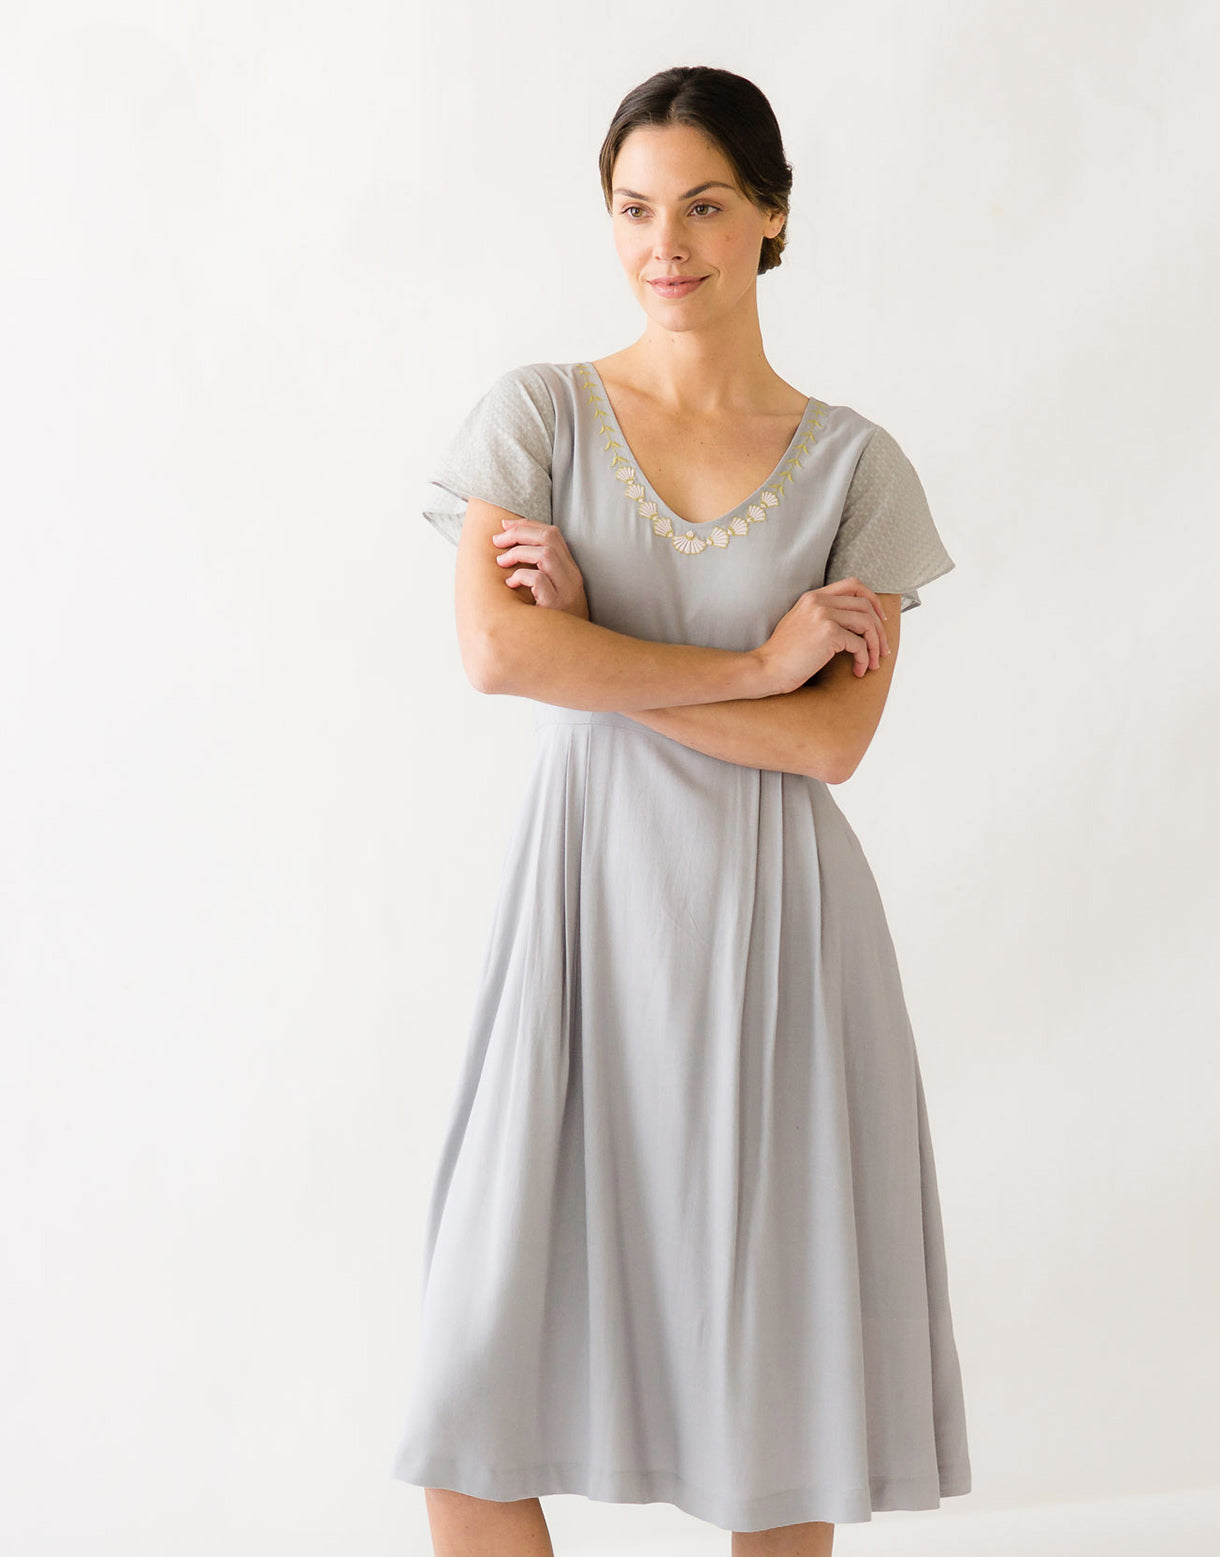 April Dress in Lunar *sustainable viscose